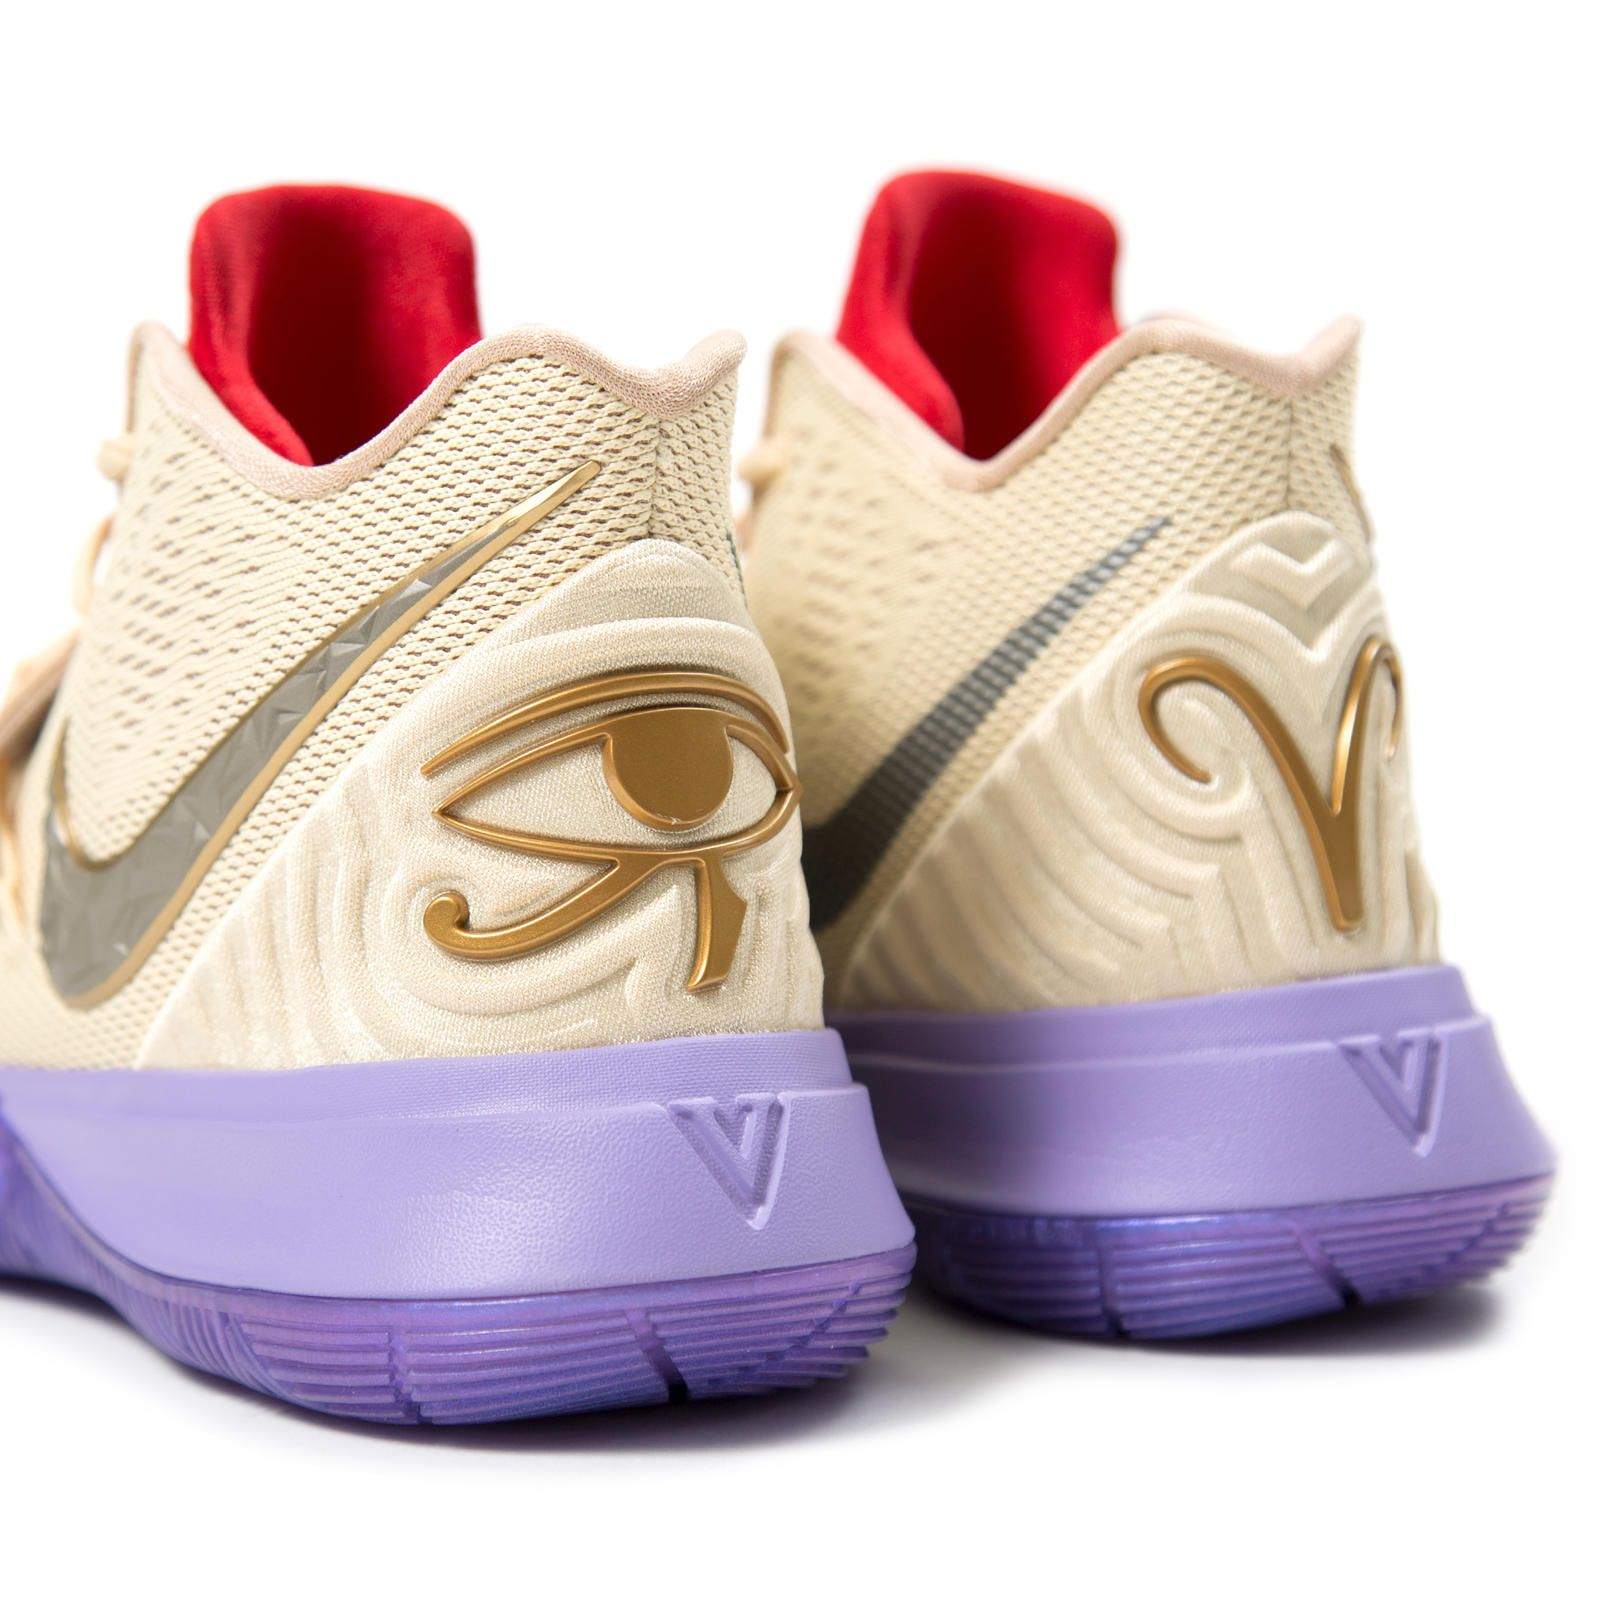 kyrie irving shoes wheats